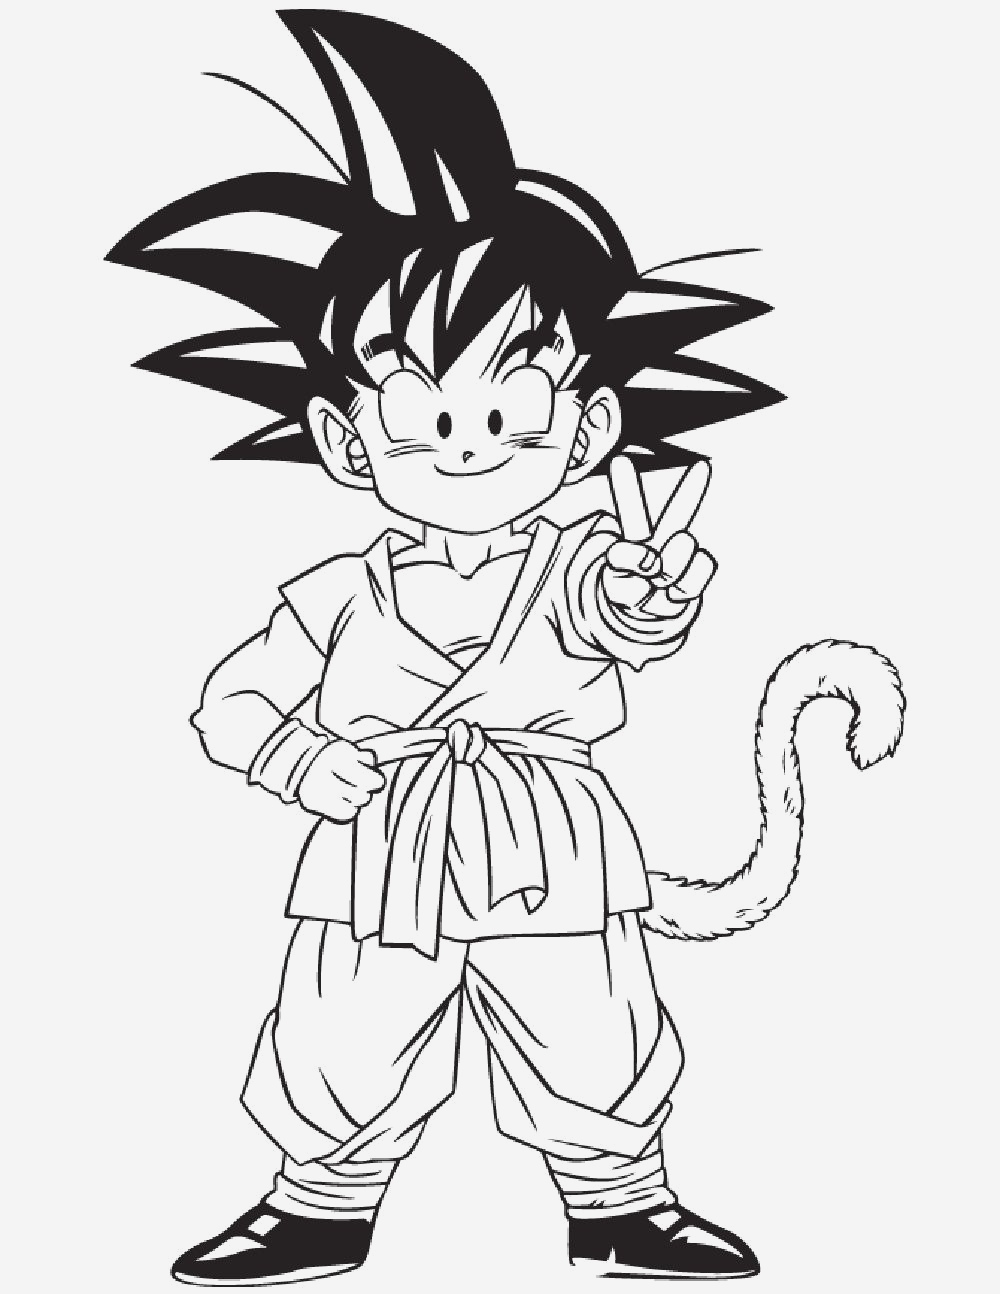 Coloriage Dragon Ball Z Sangoku Best Of Coloriage Goku Meilleur De Belle Coloriage Dragon Ball Z